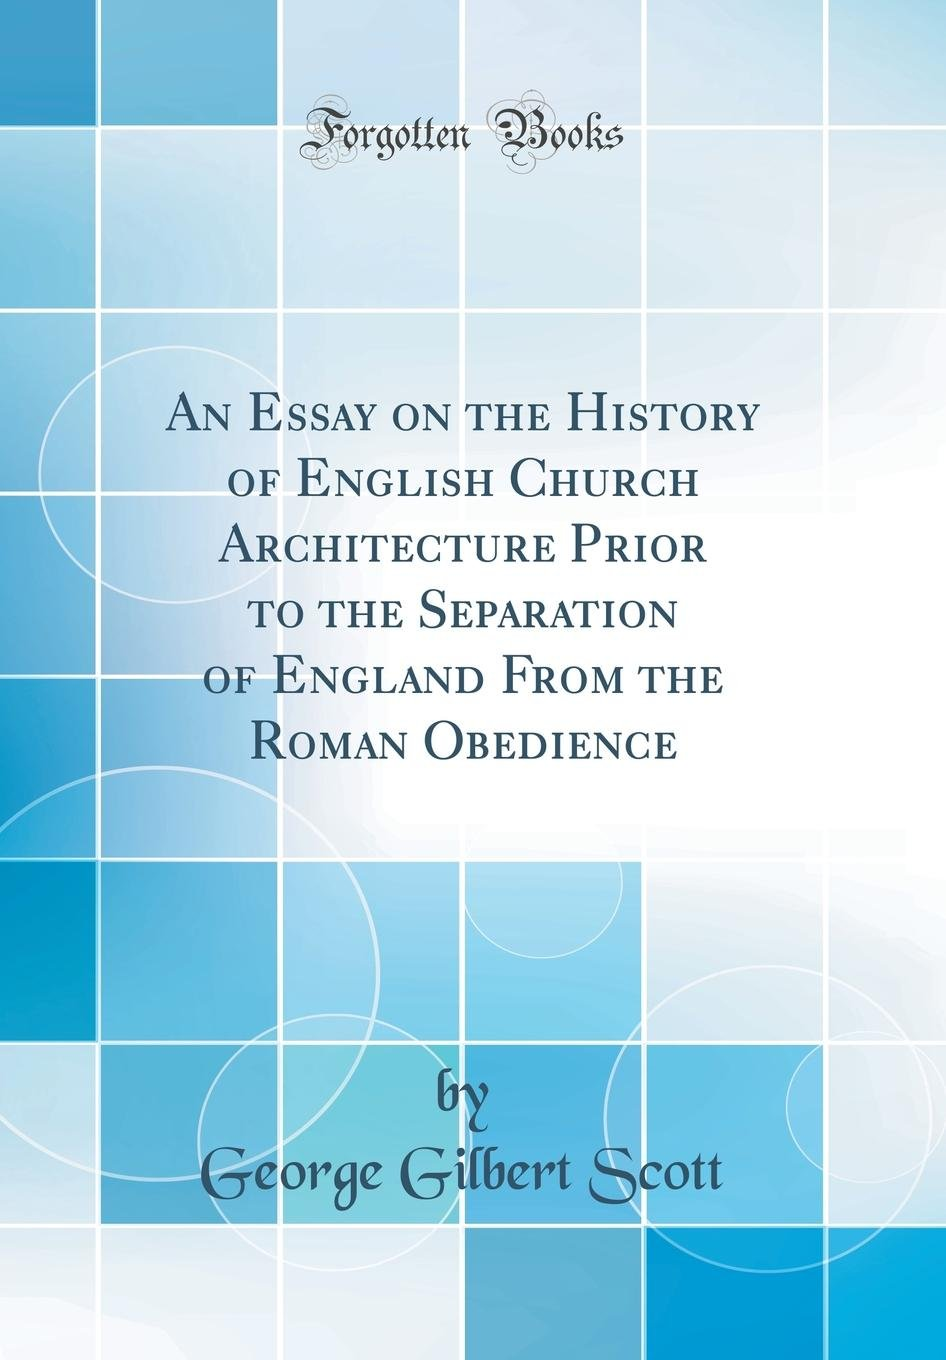 an essay on the history of english church architecture prior